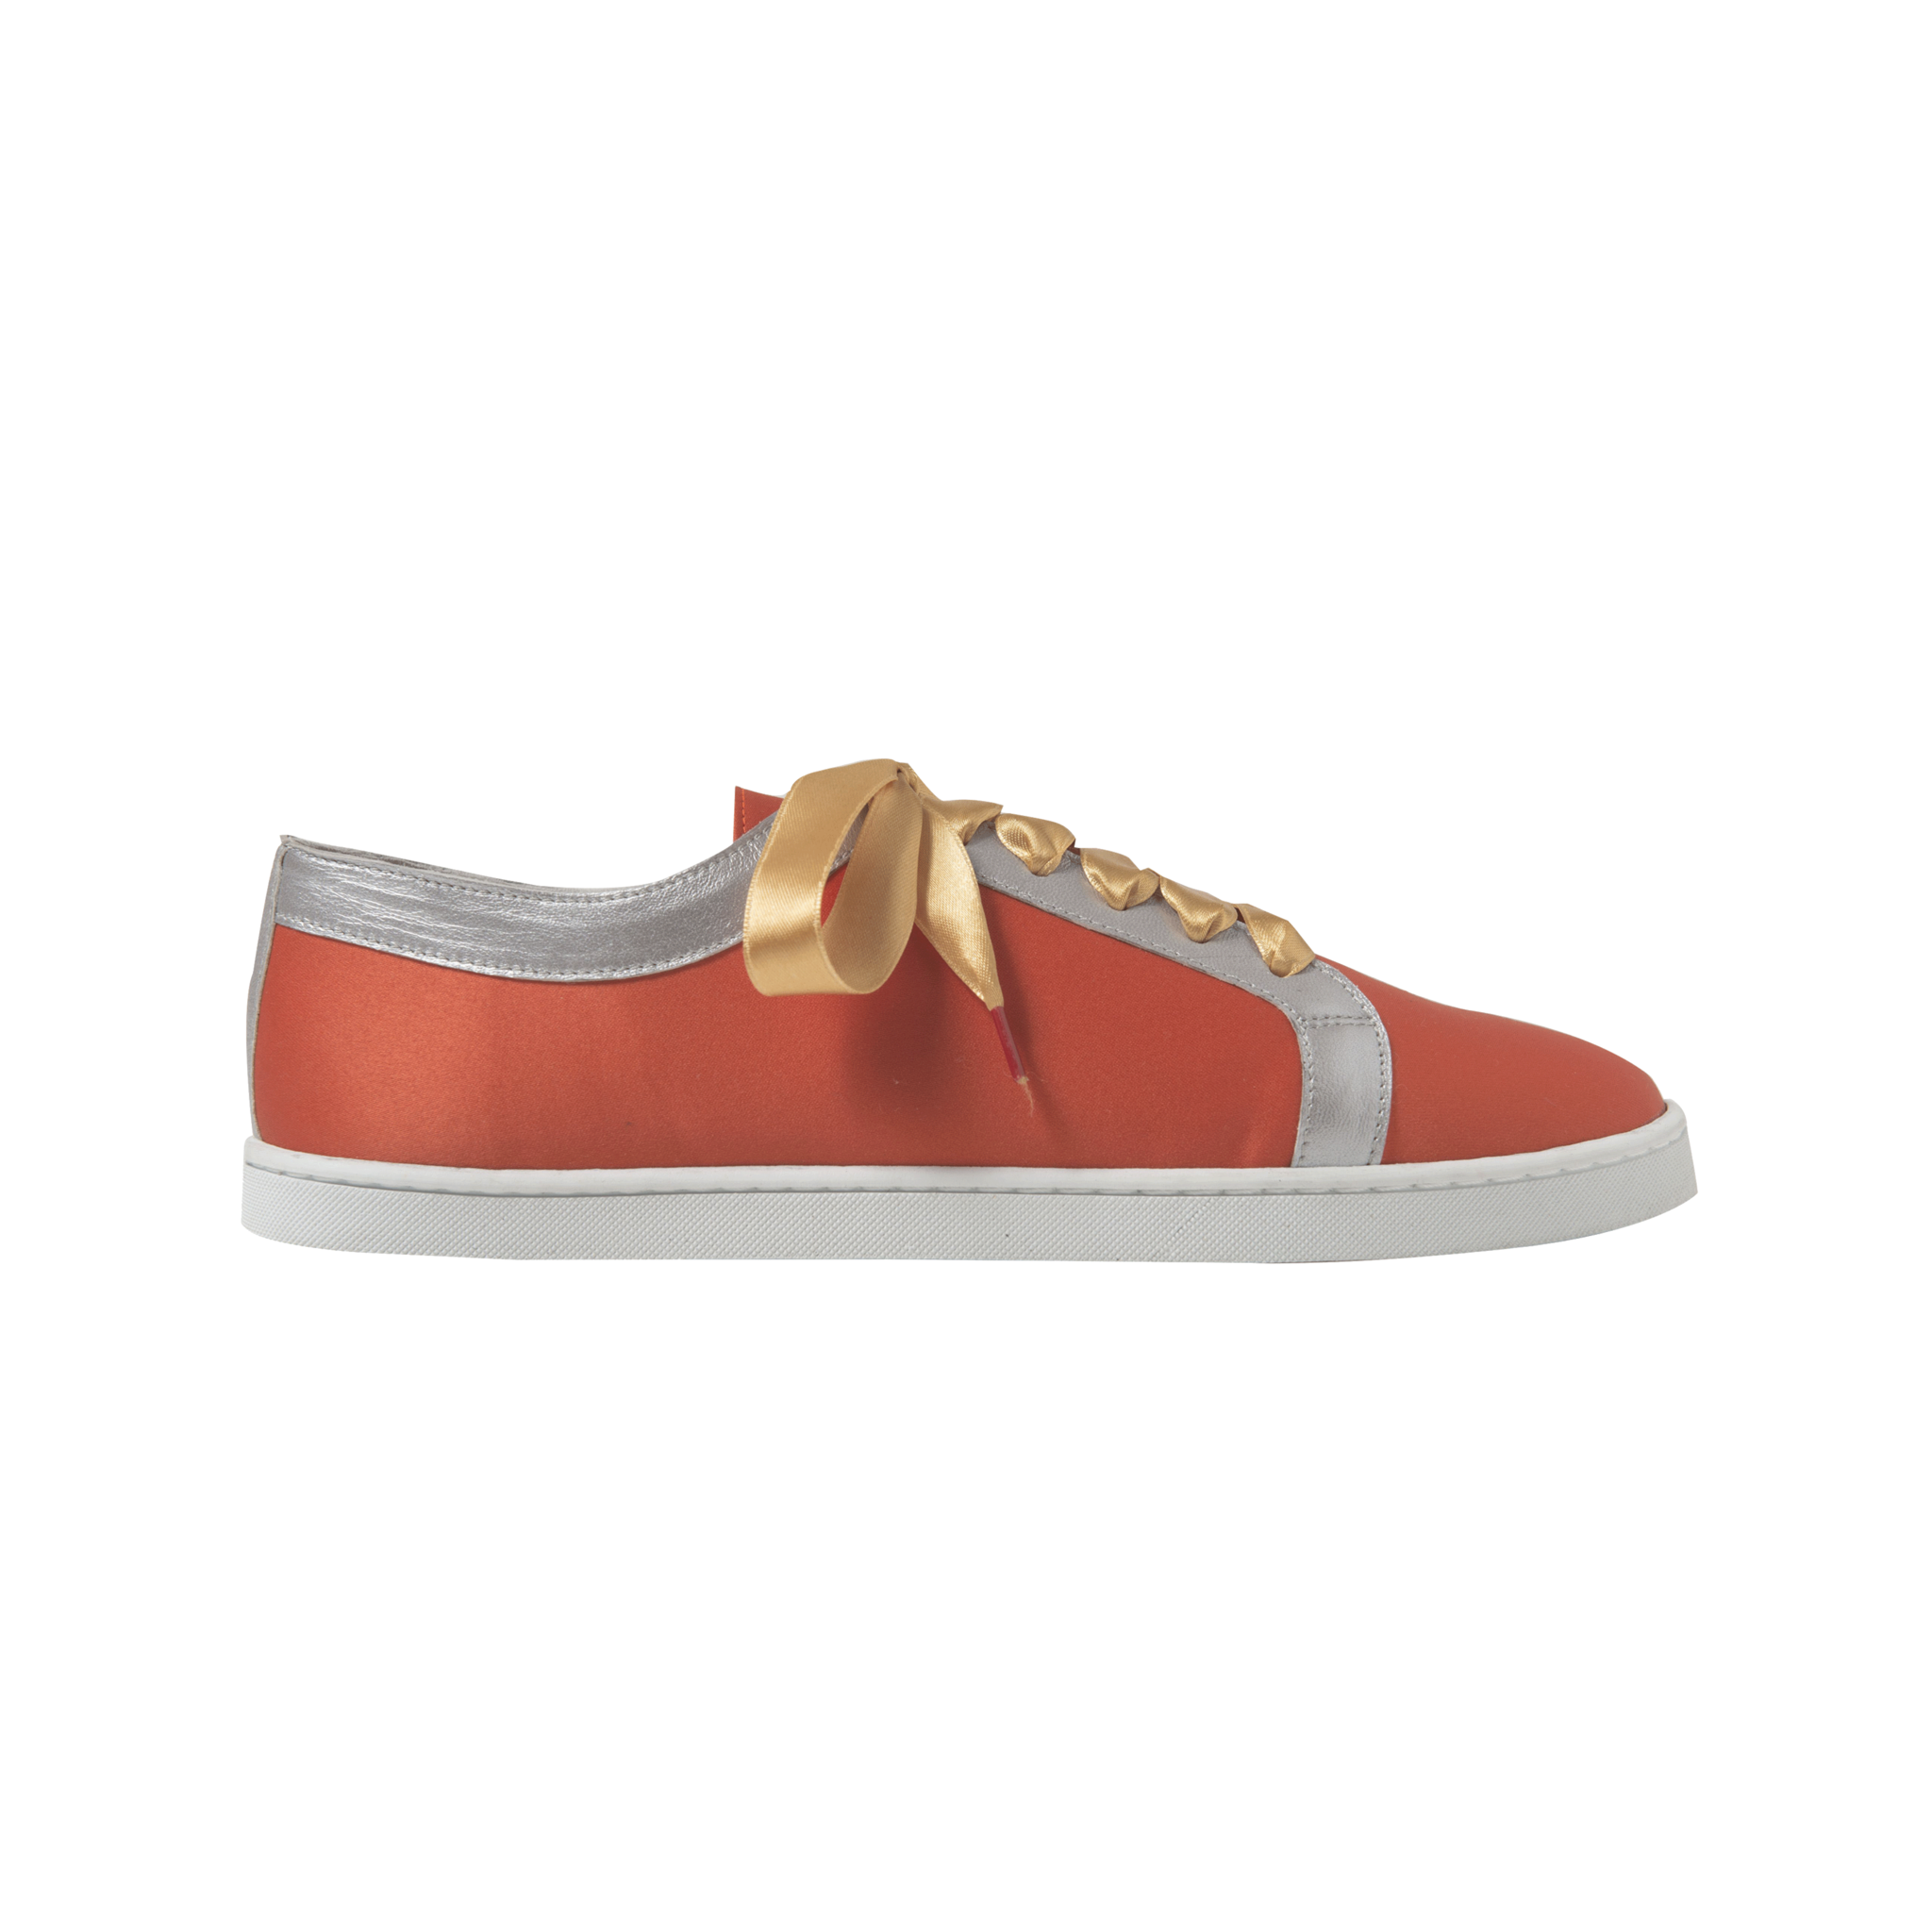 Boubou Silk Orange - SILK SNEAKERS